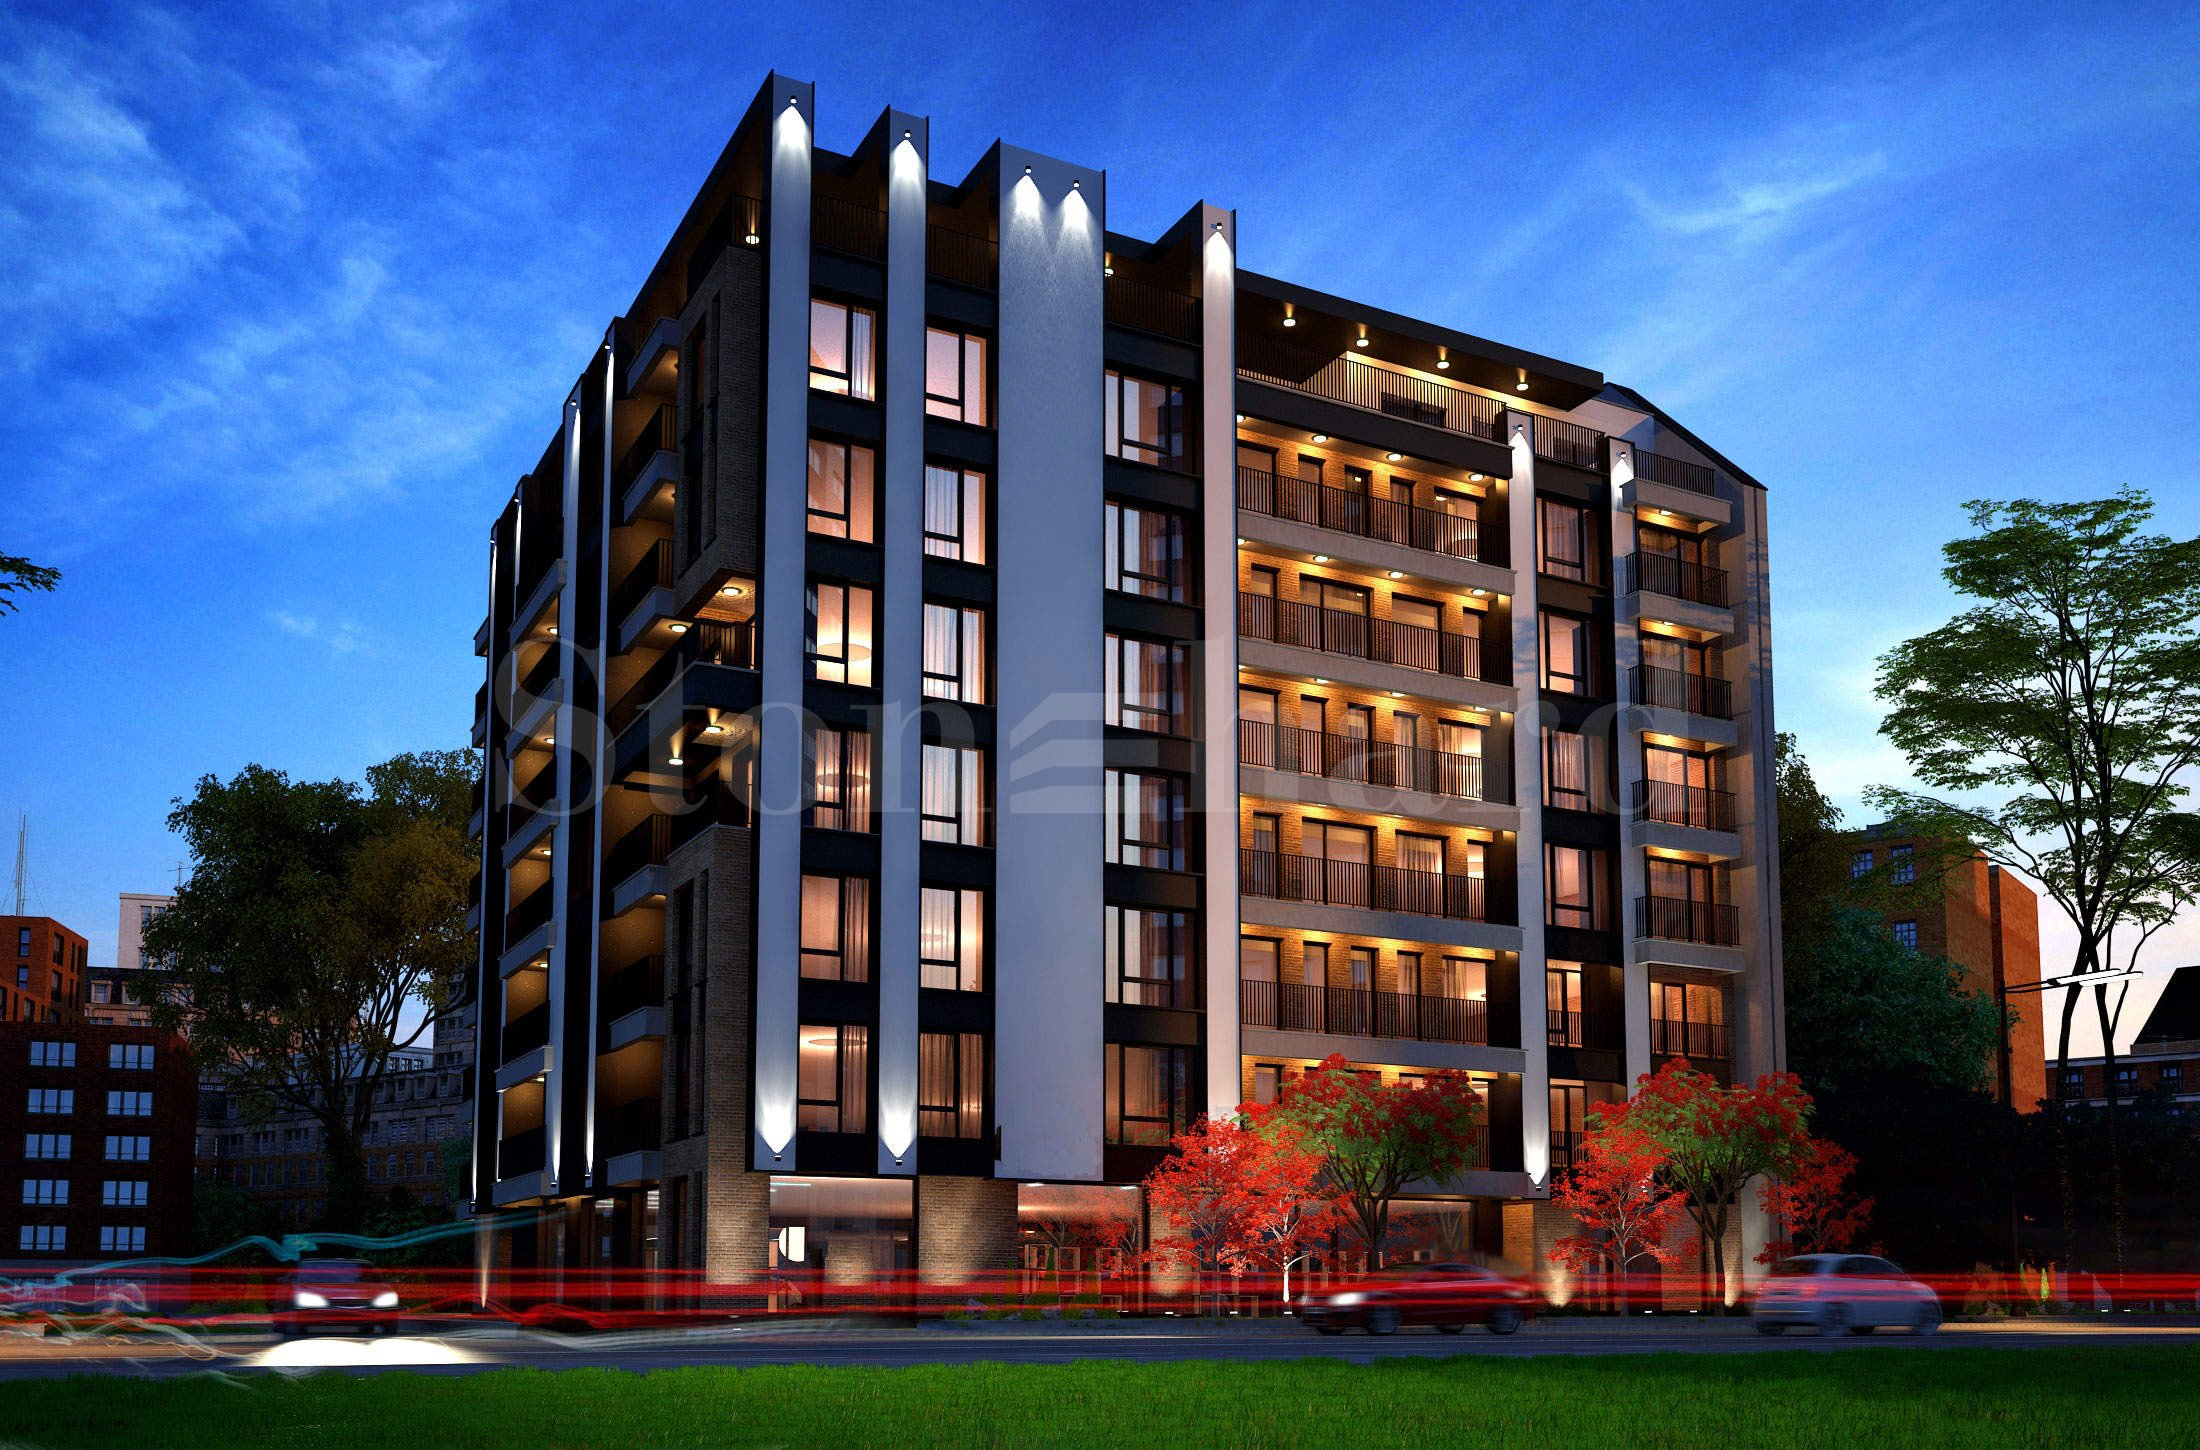 Bissera Residence - exclusive residential building near park